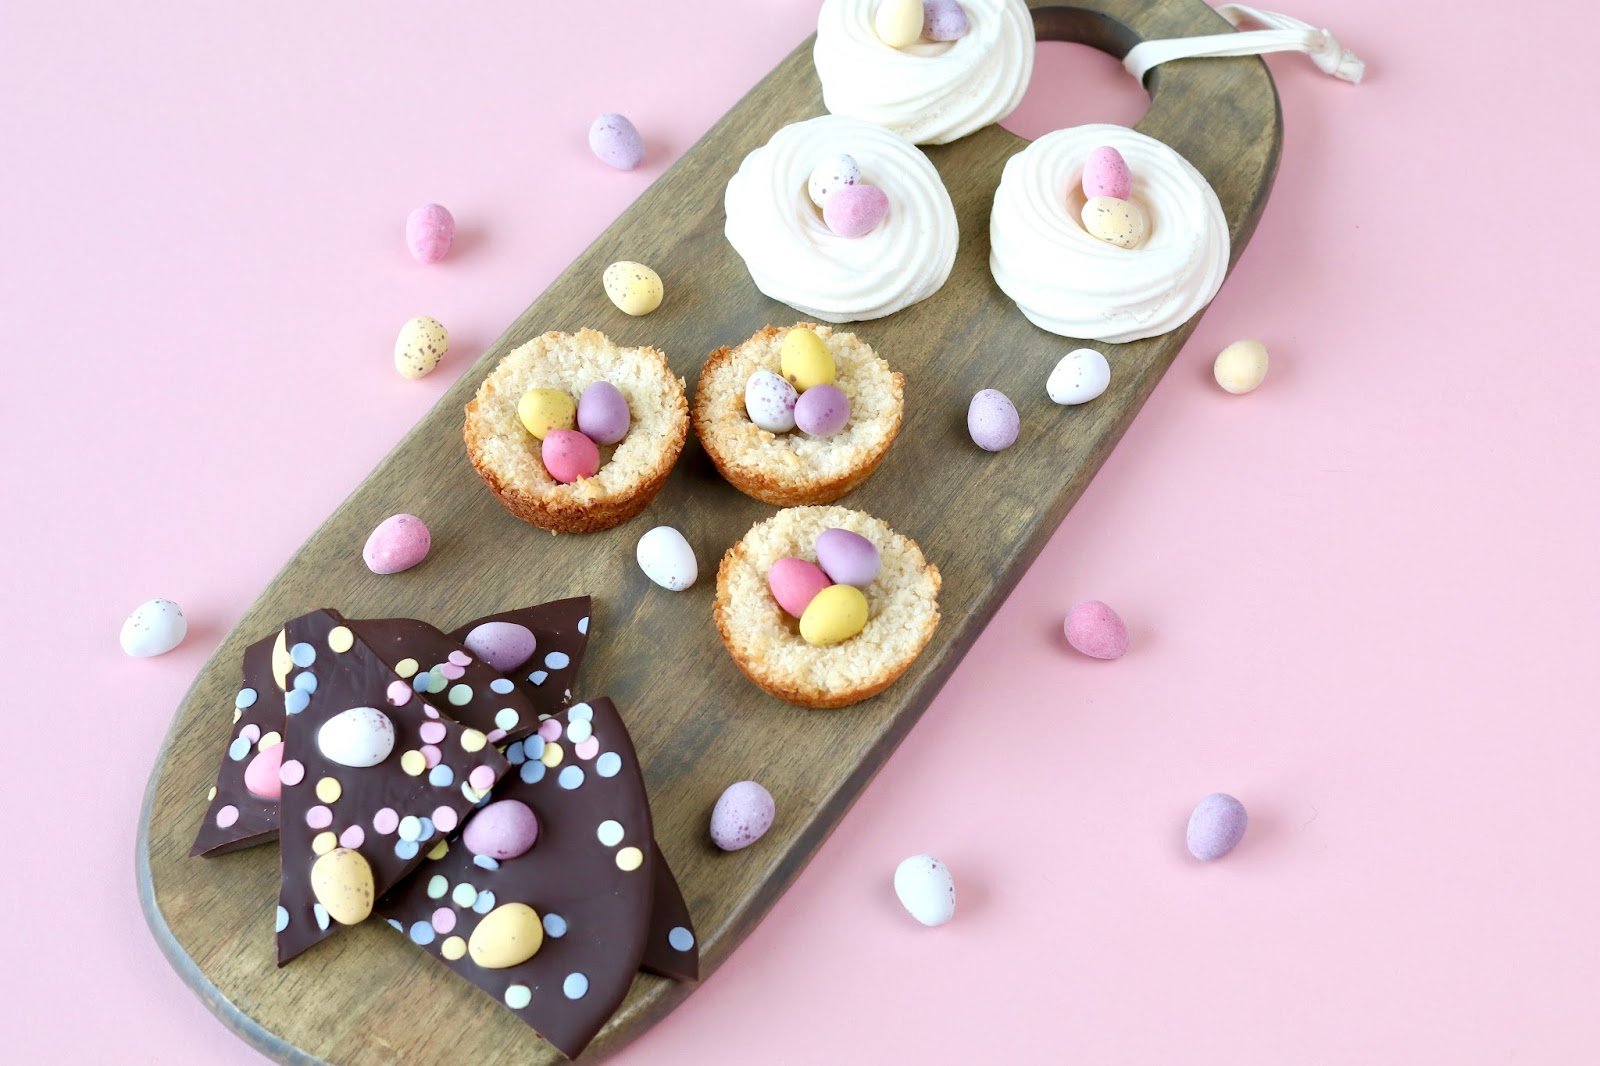 Easter treats coconut macaroons meringue nests chocolate bark with mini eggs flatlay